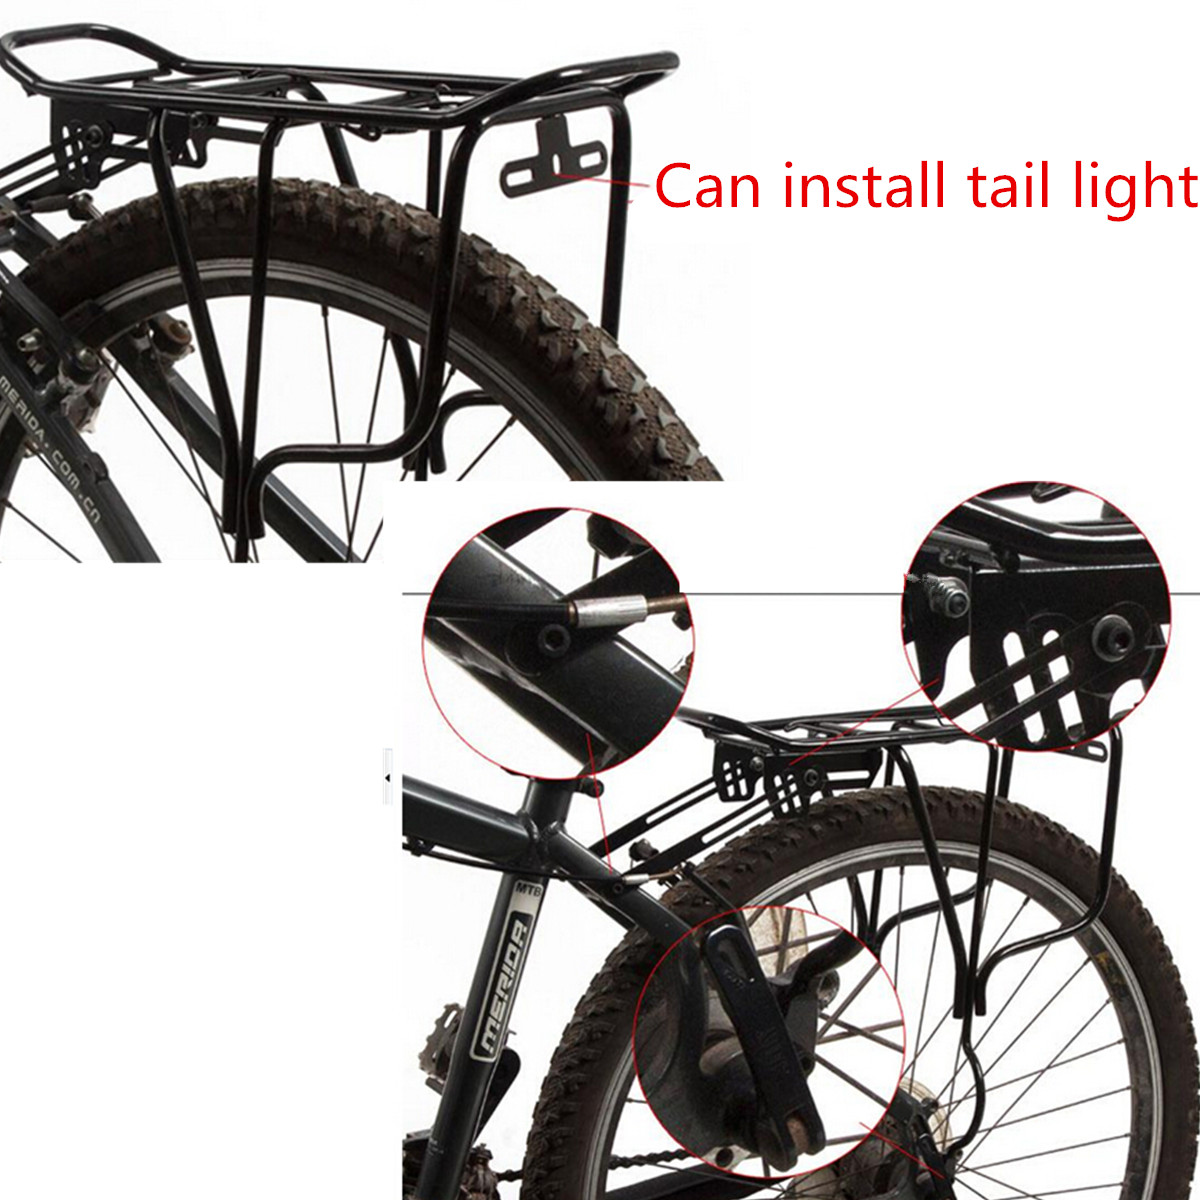 Extendable Bike Rack : Cycling bicycle extendable bike luggage seat post pannier